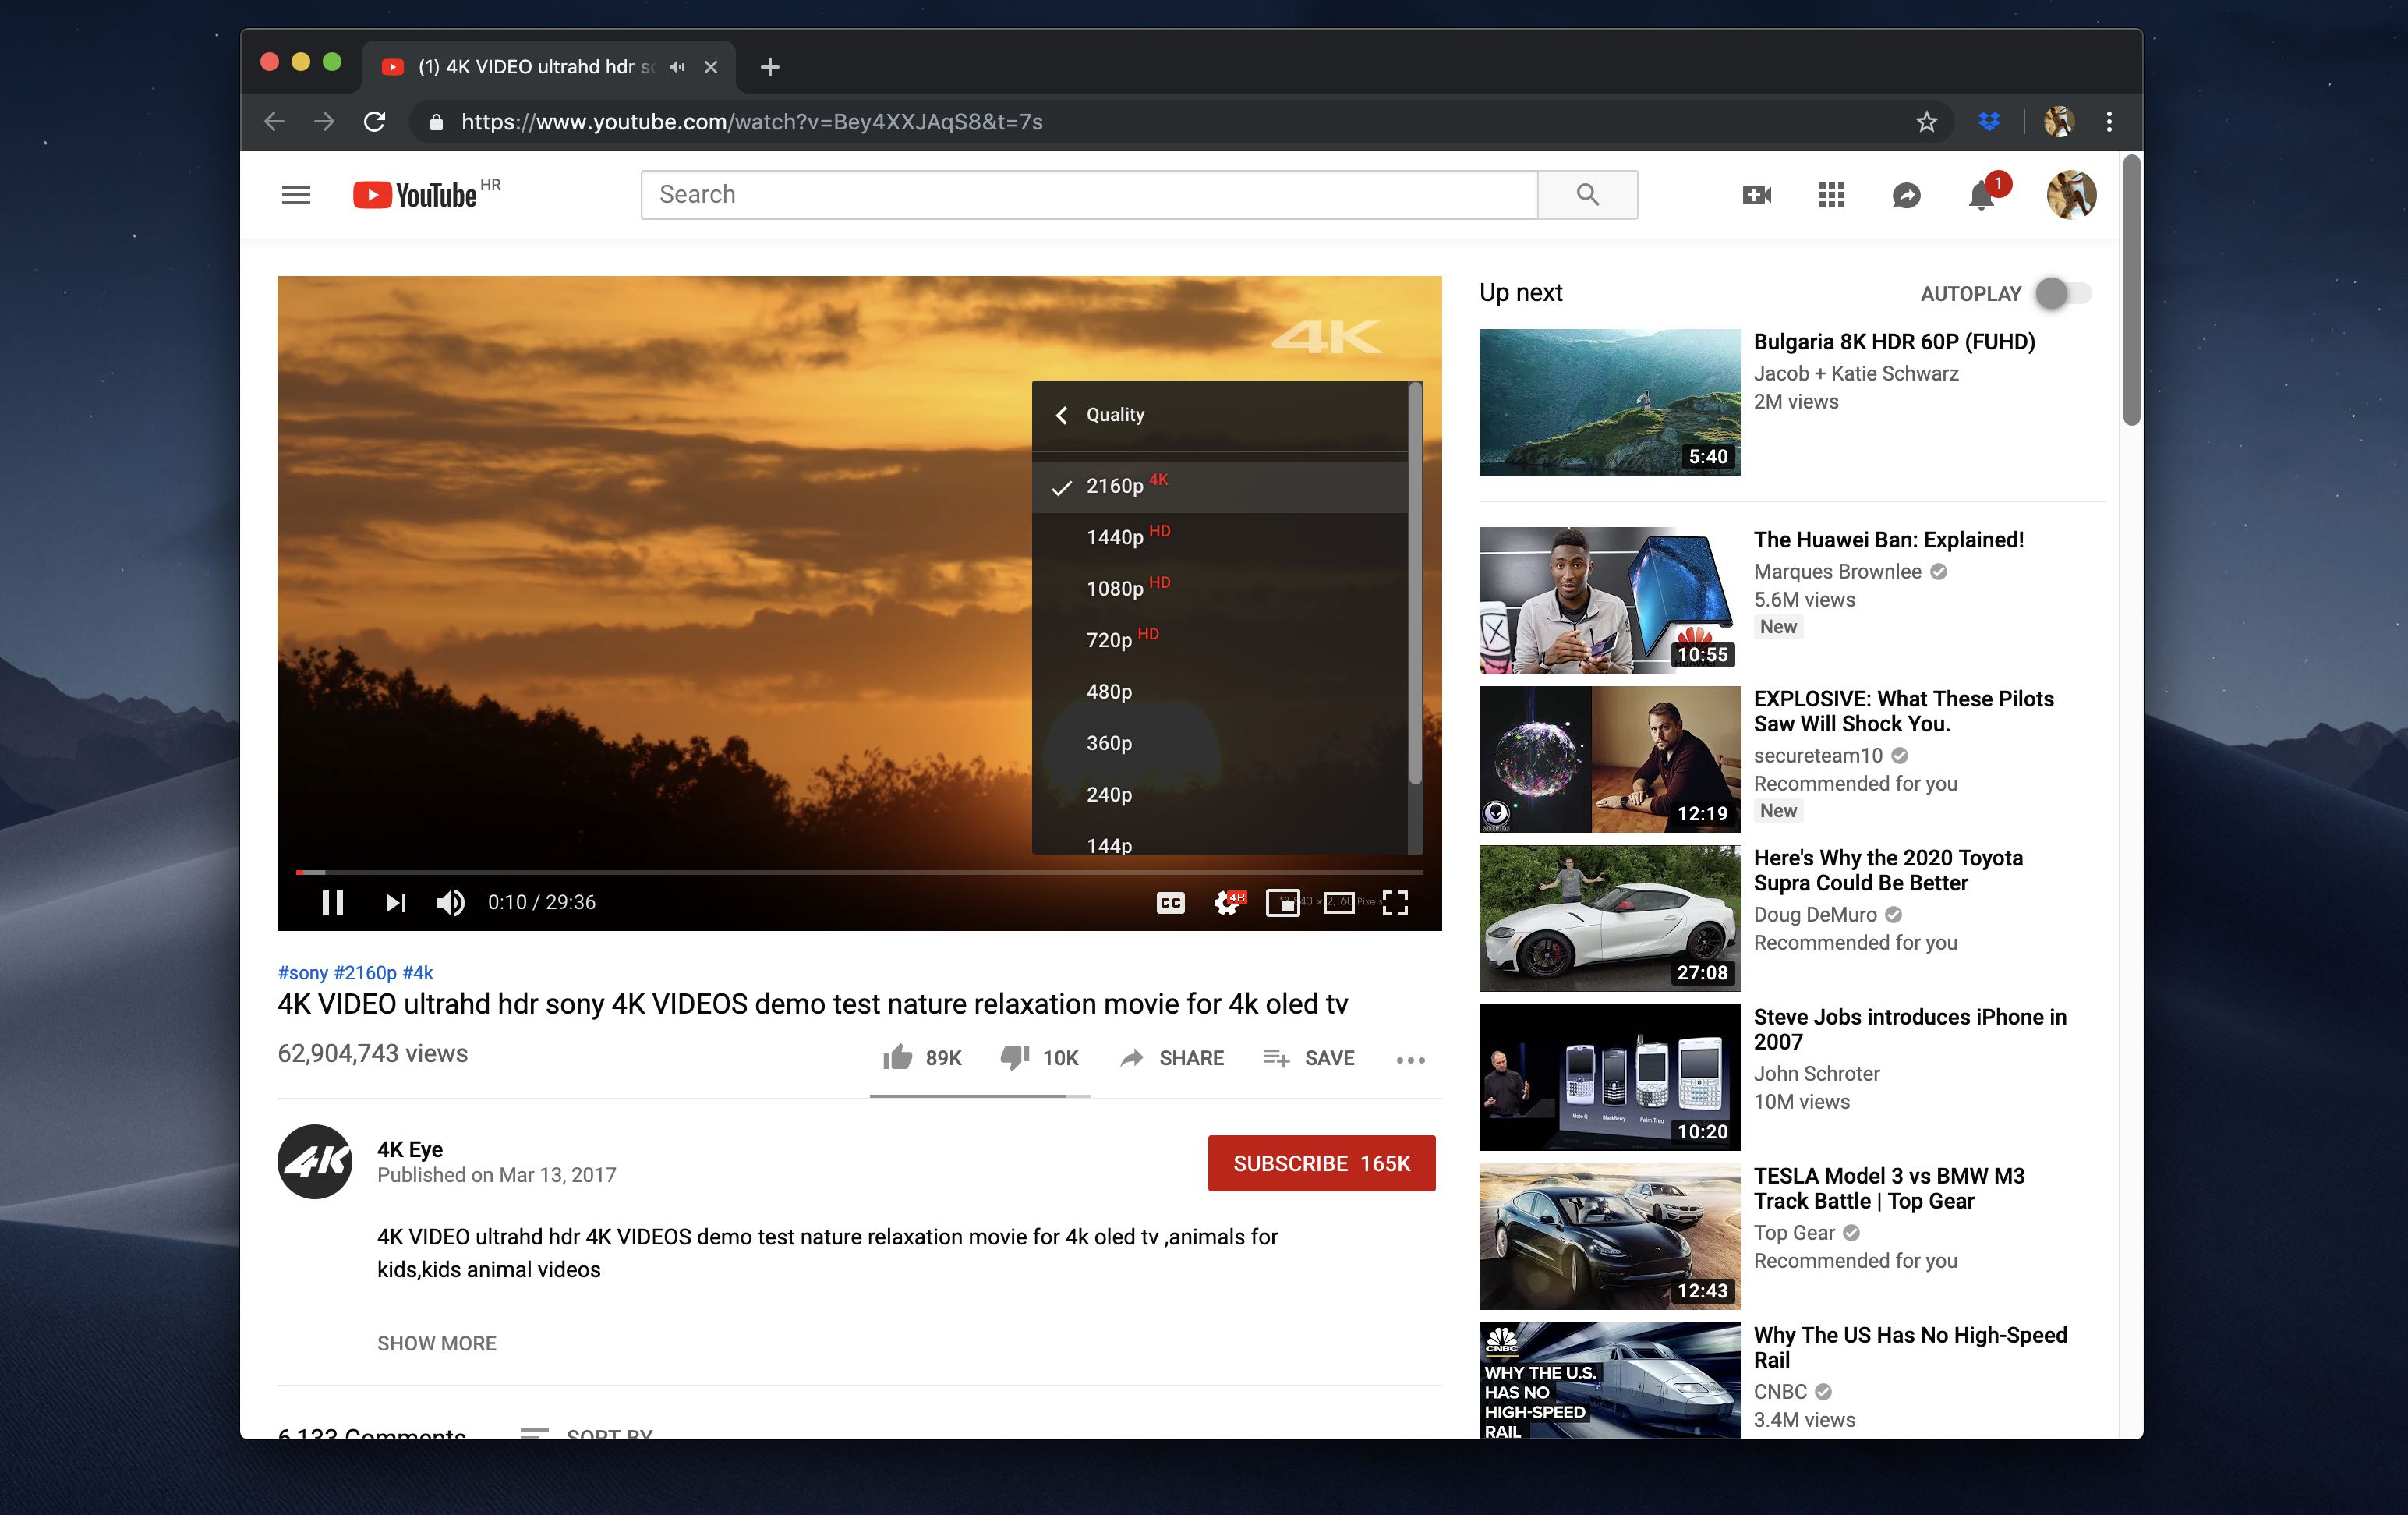 This Safari extension helps you identify and watch 4K YouTube videos